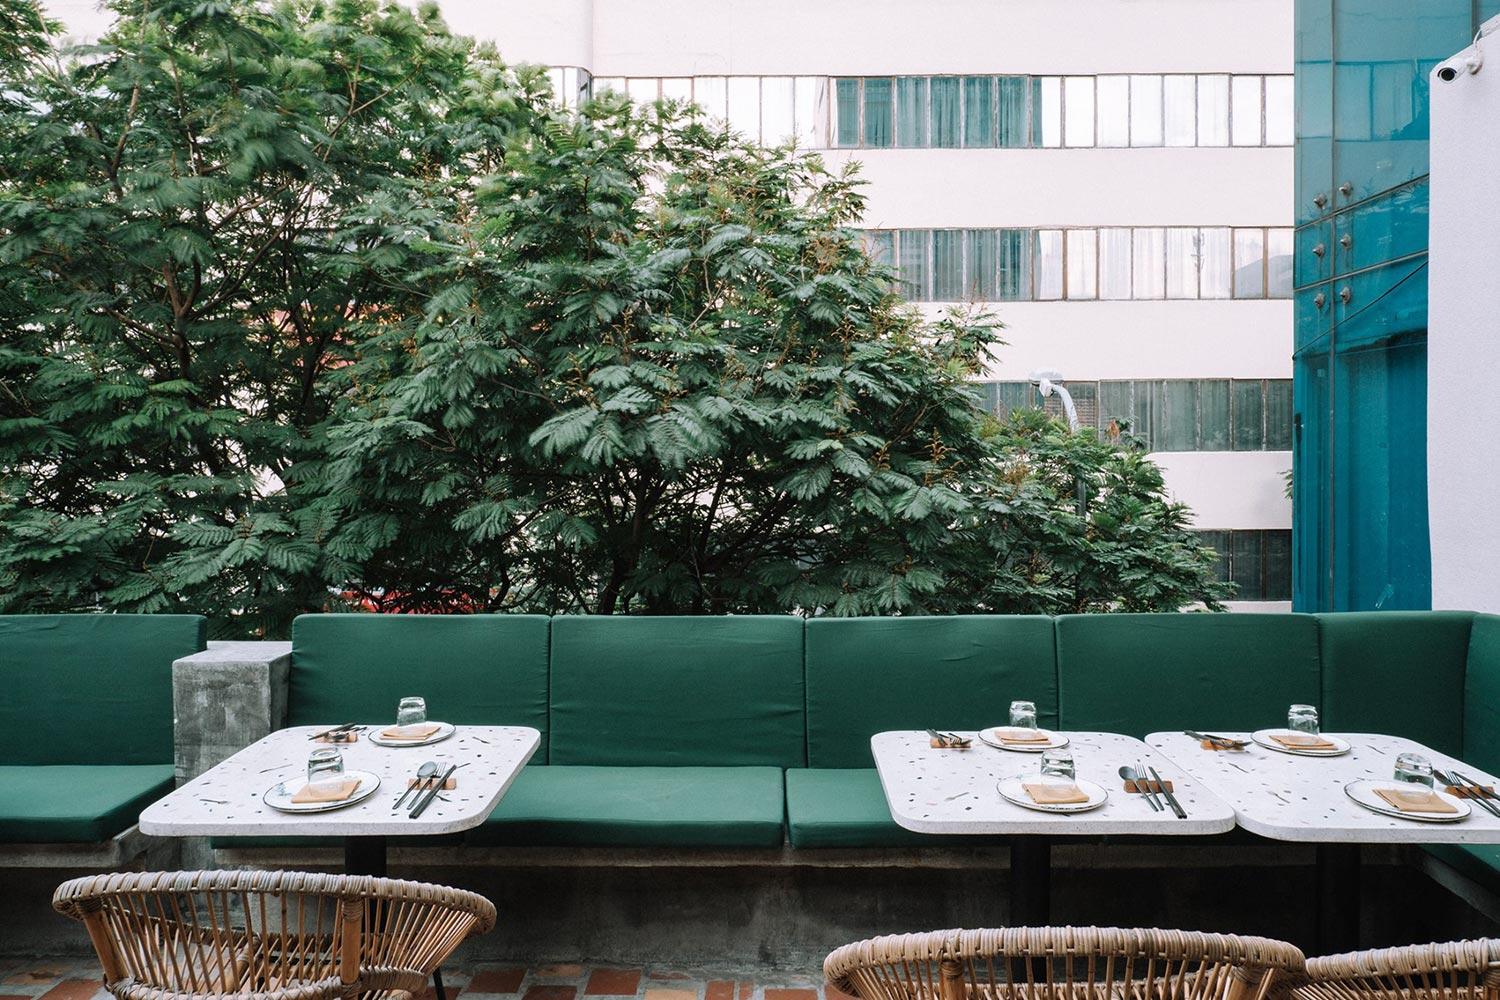 Kiba Saigon outdoor tables and sofa surrounded with trees and office building